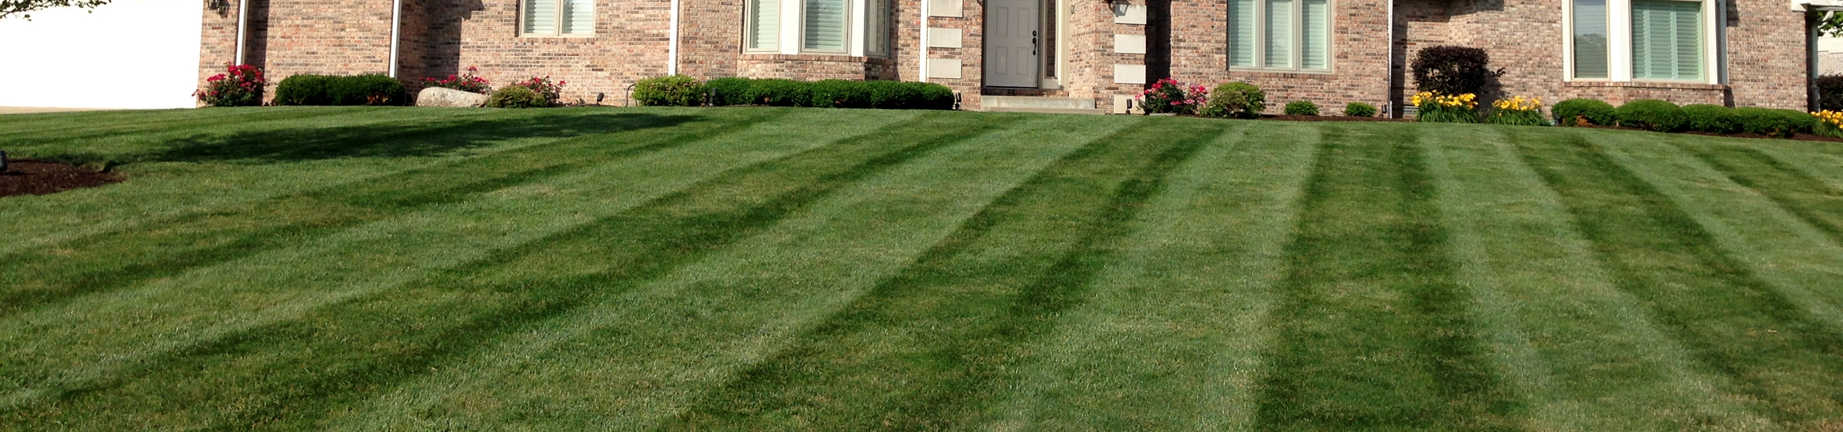 Weekly Lawn Maintenance - Geist Harbors a